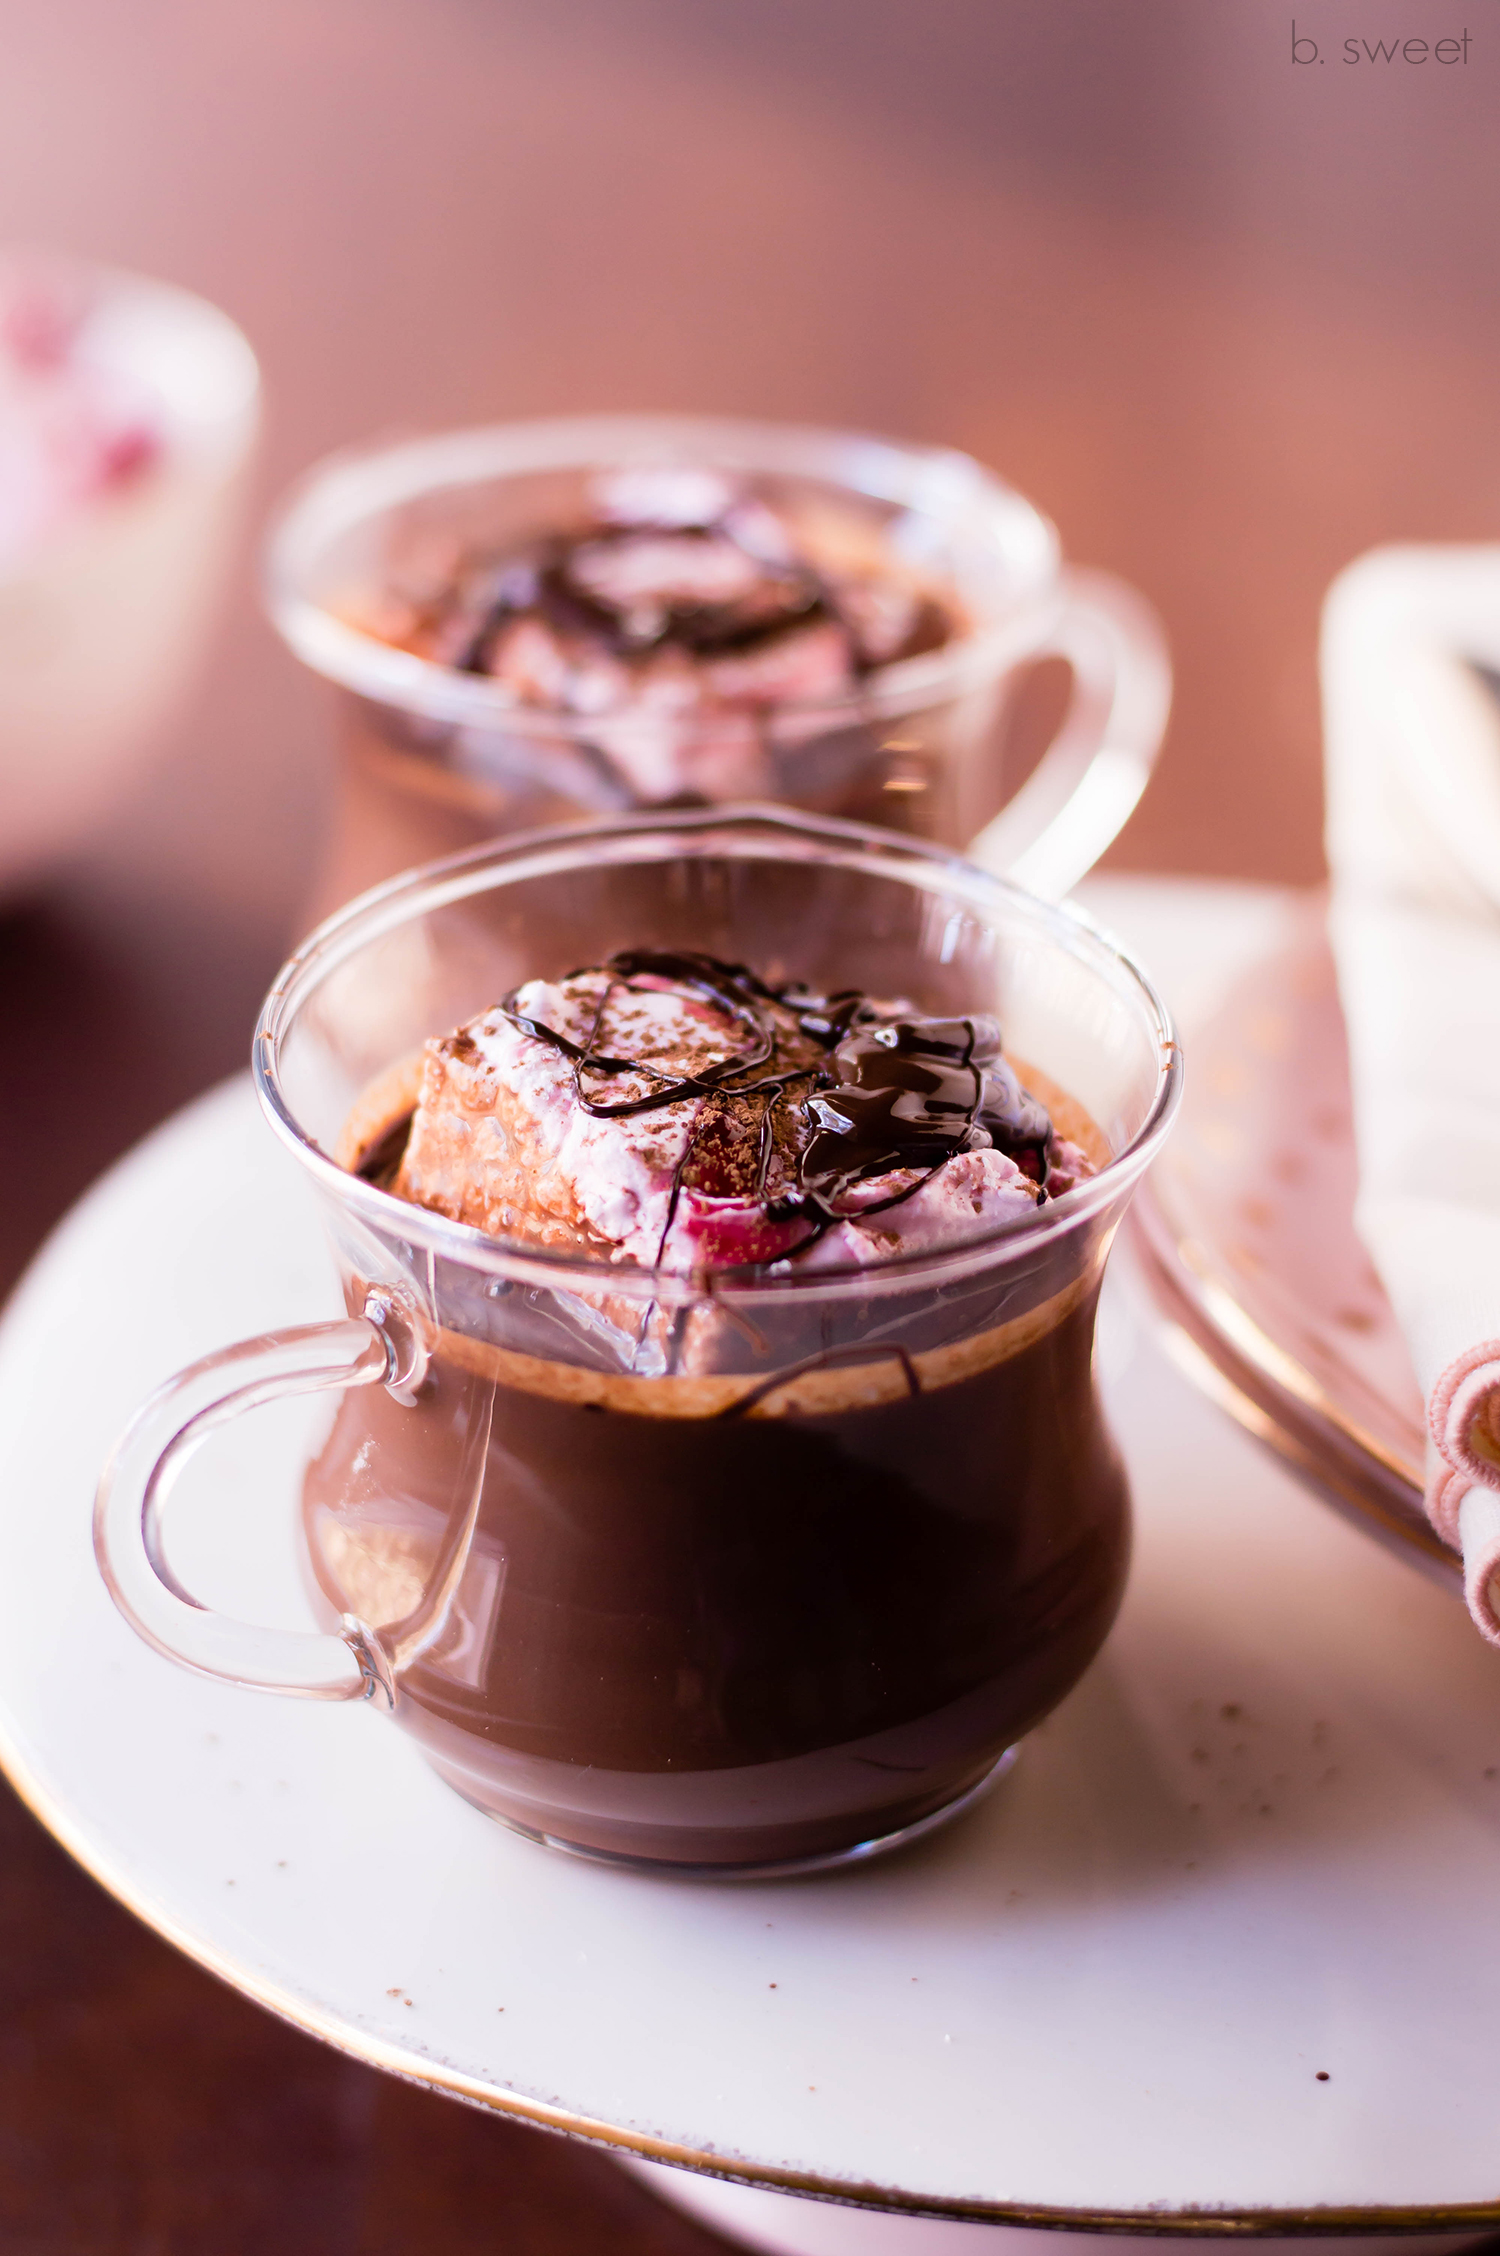 Dark Chocolate Raspberry Hot Chocolate for Two - b. sweet